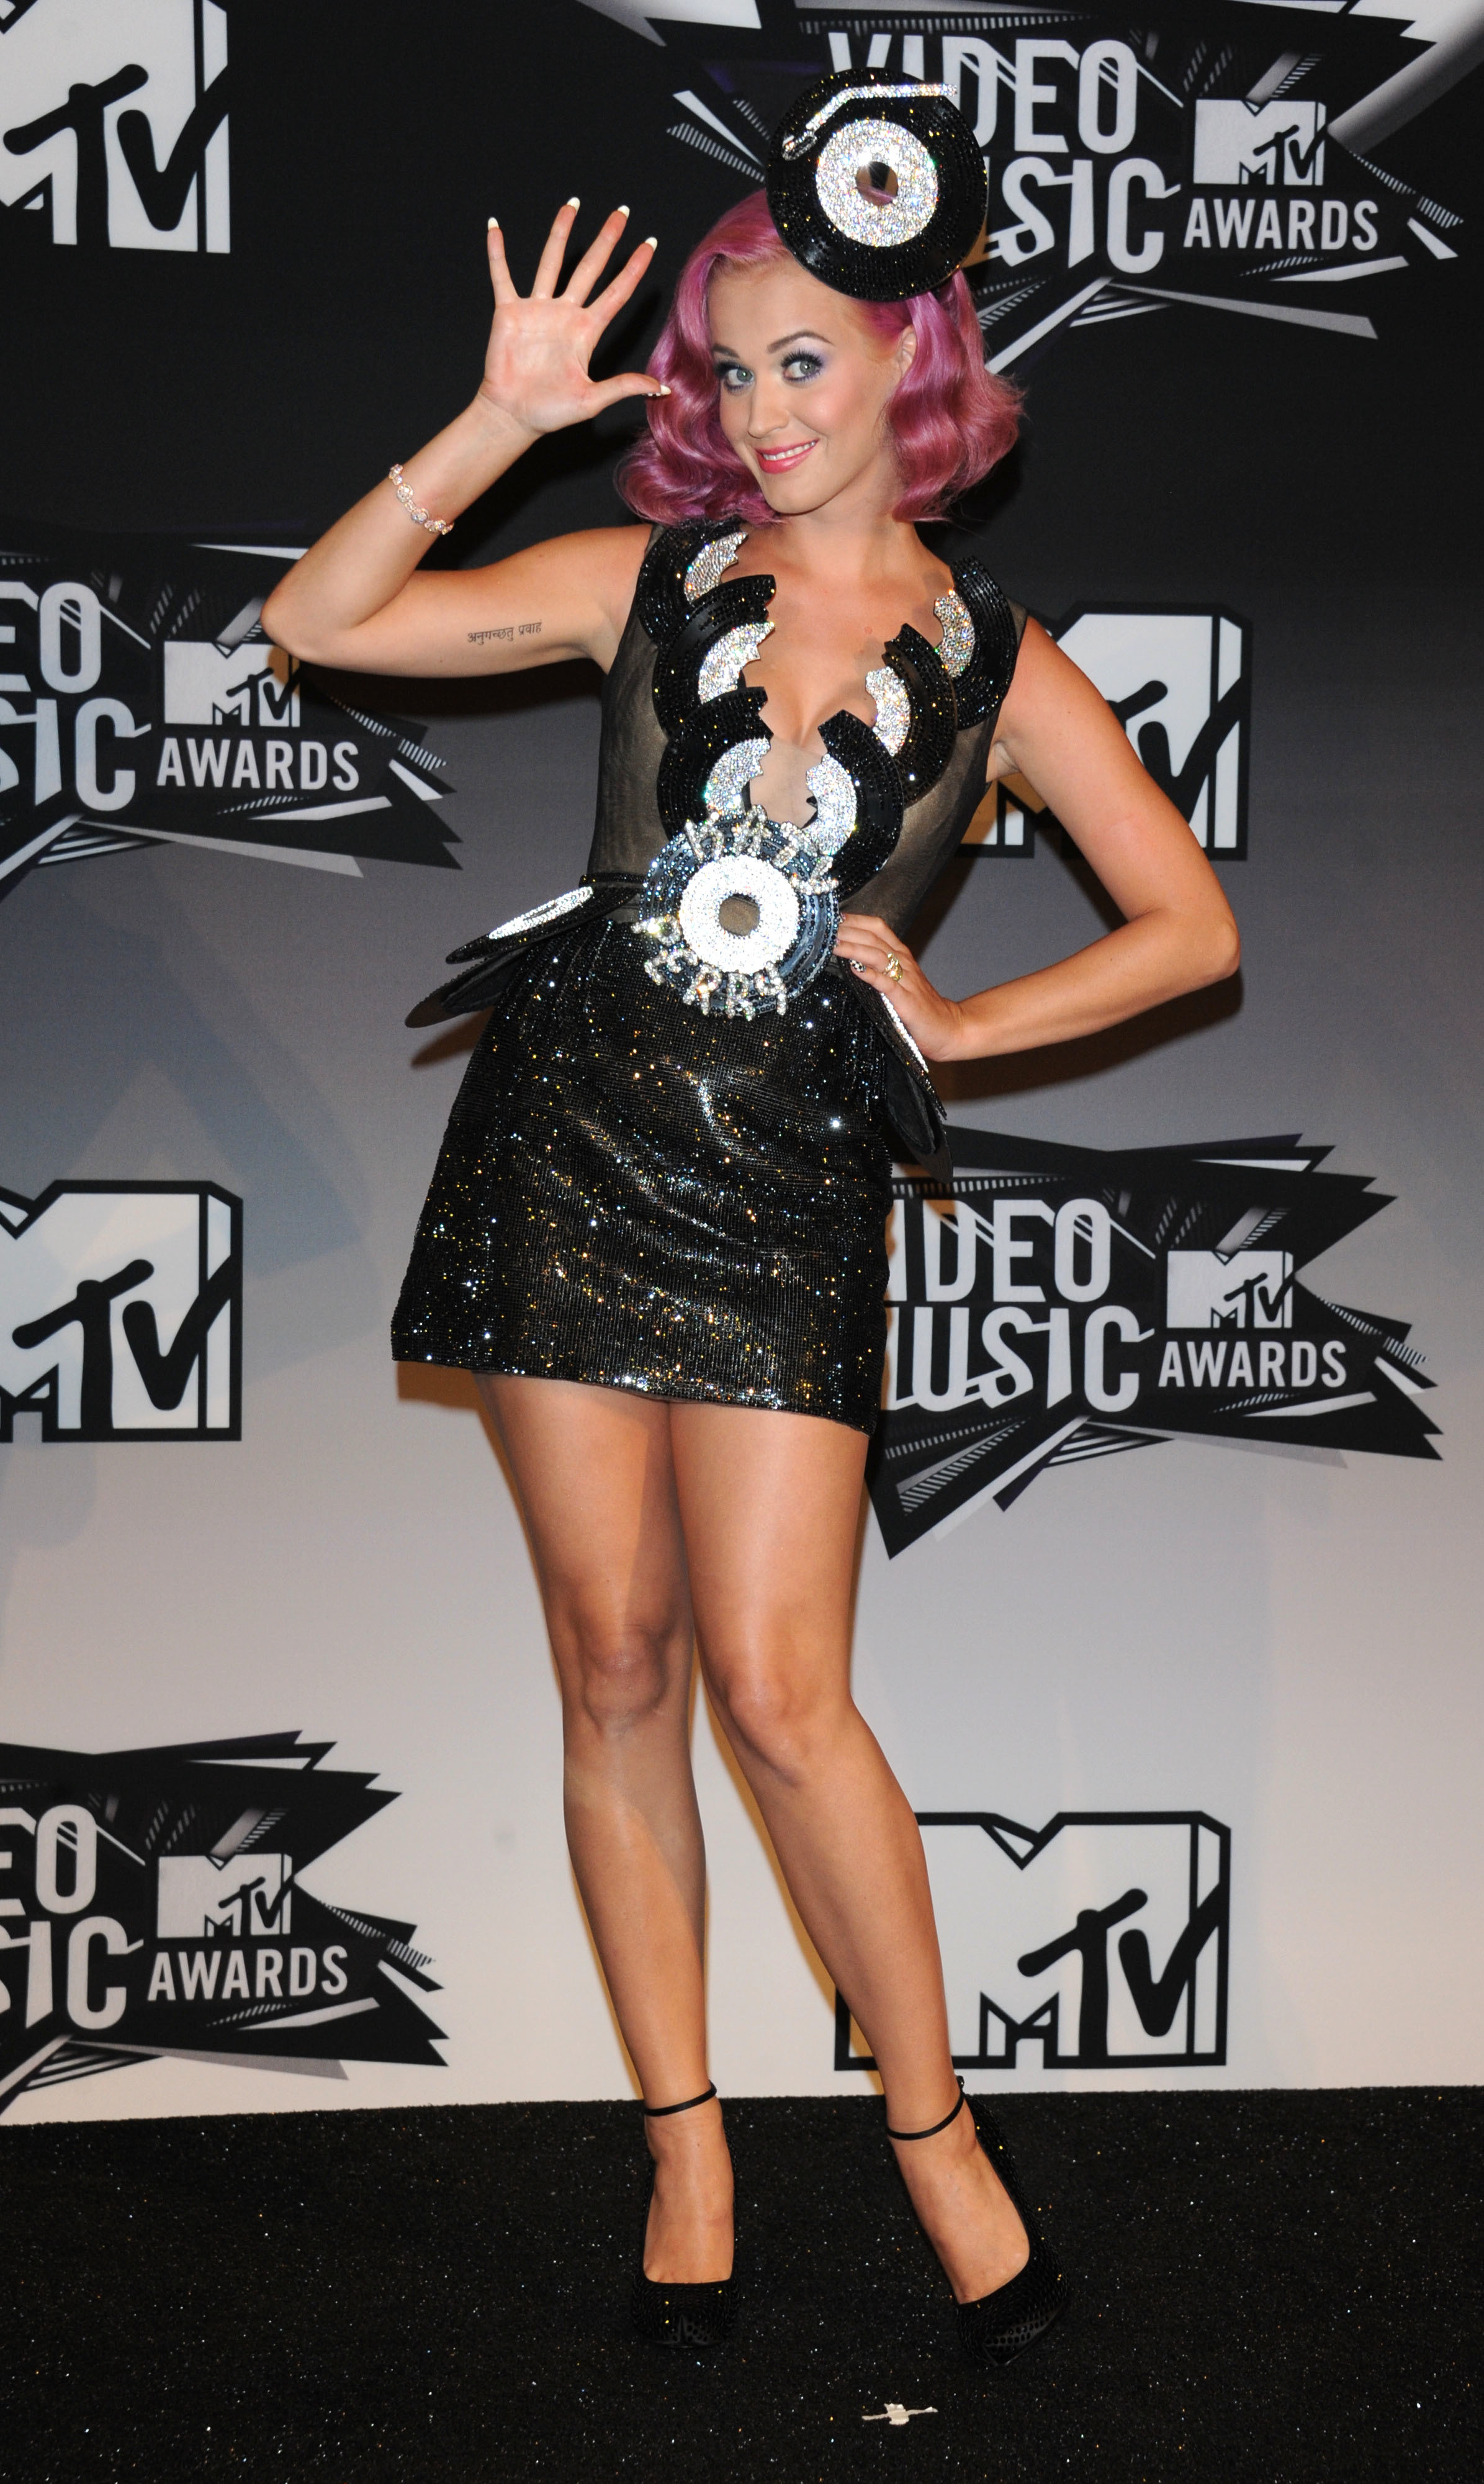 ea3aa41e6929c 50 worst VMA outfits of all time | Gallery | Wonderwall.com